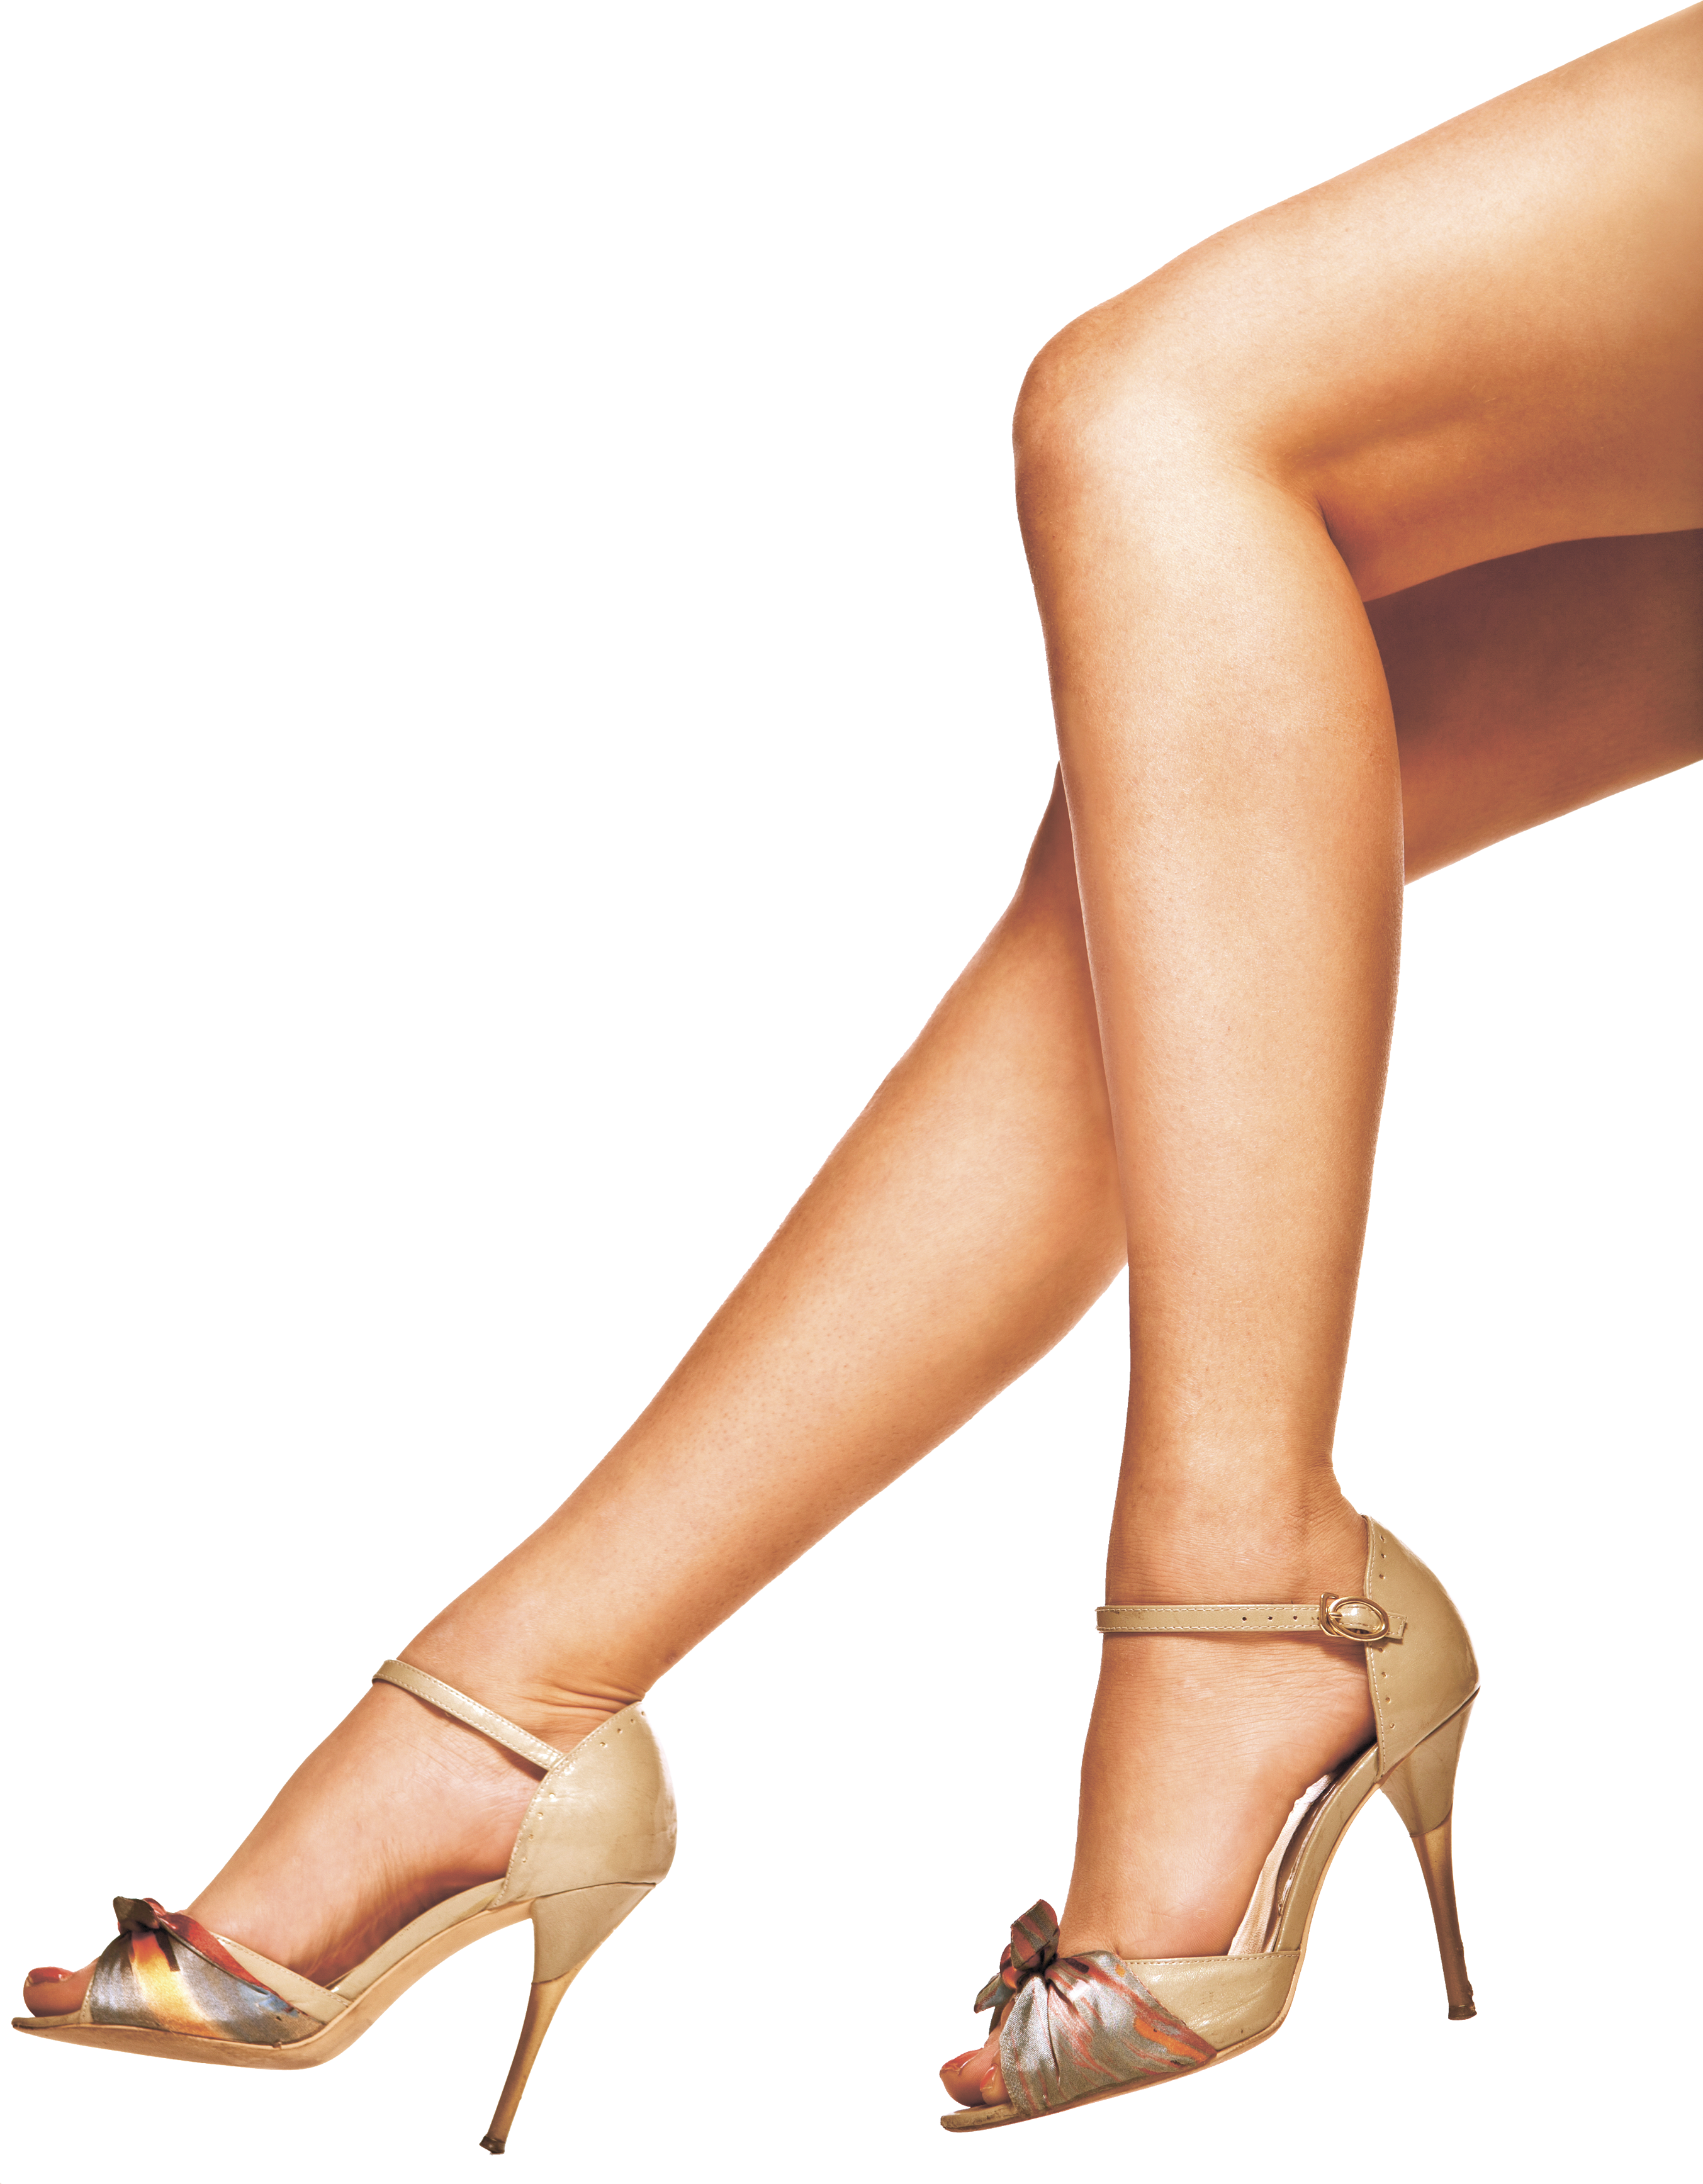 Women legs png image. Foot clipart ankle